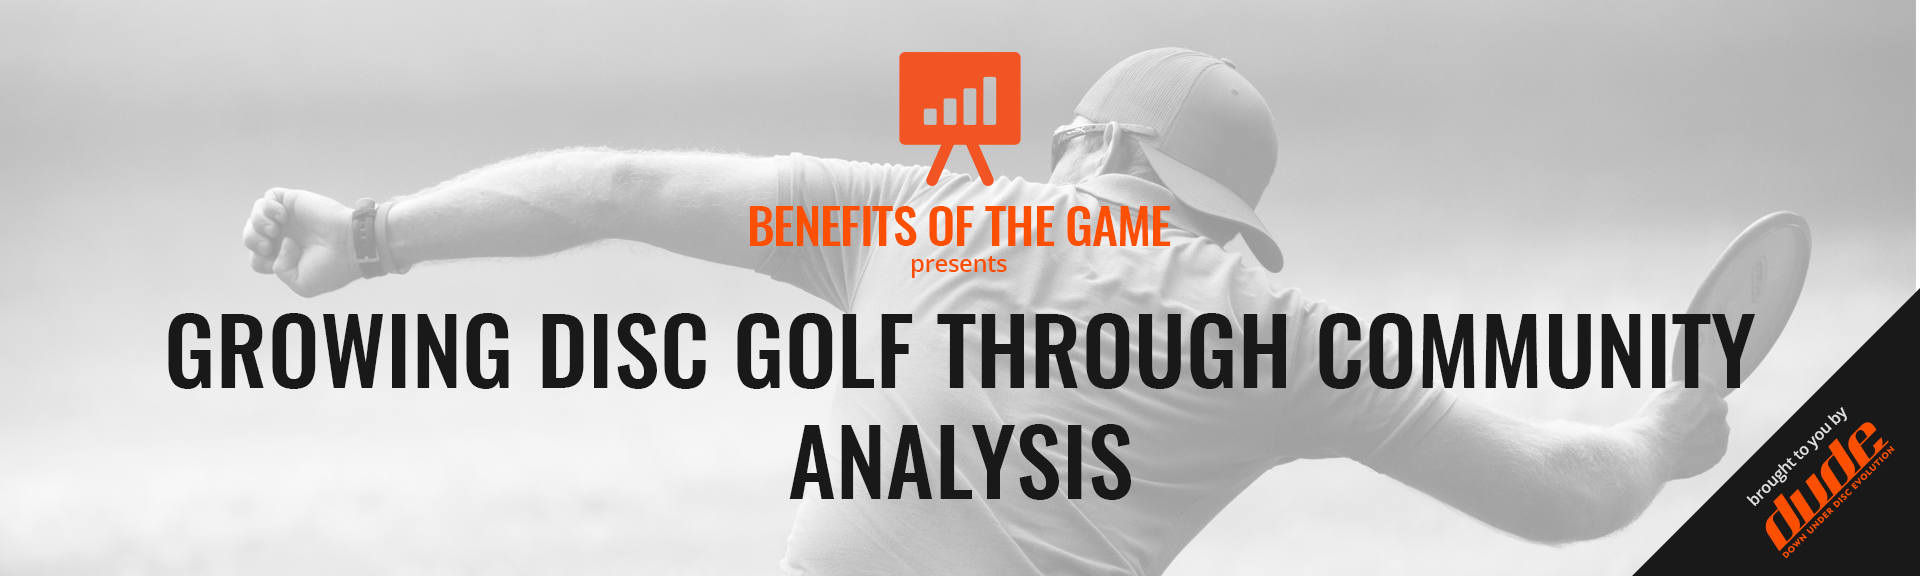 Benefits of the game - Growing Disc Golf Through Community Analysis, Disc Golf, Community, events and opportunities, disc golfers